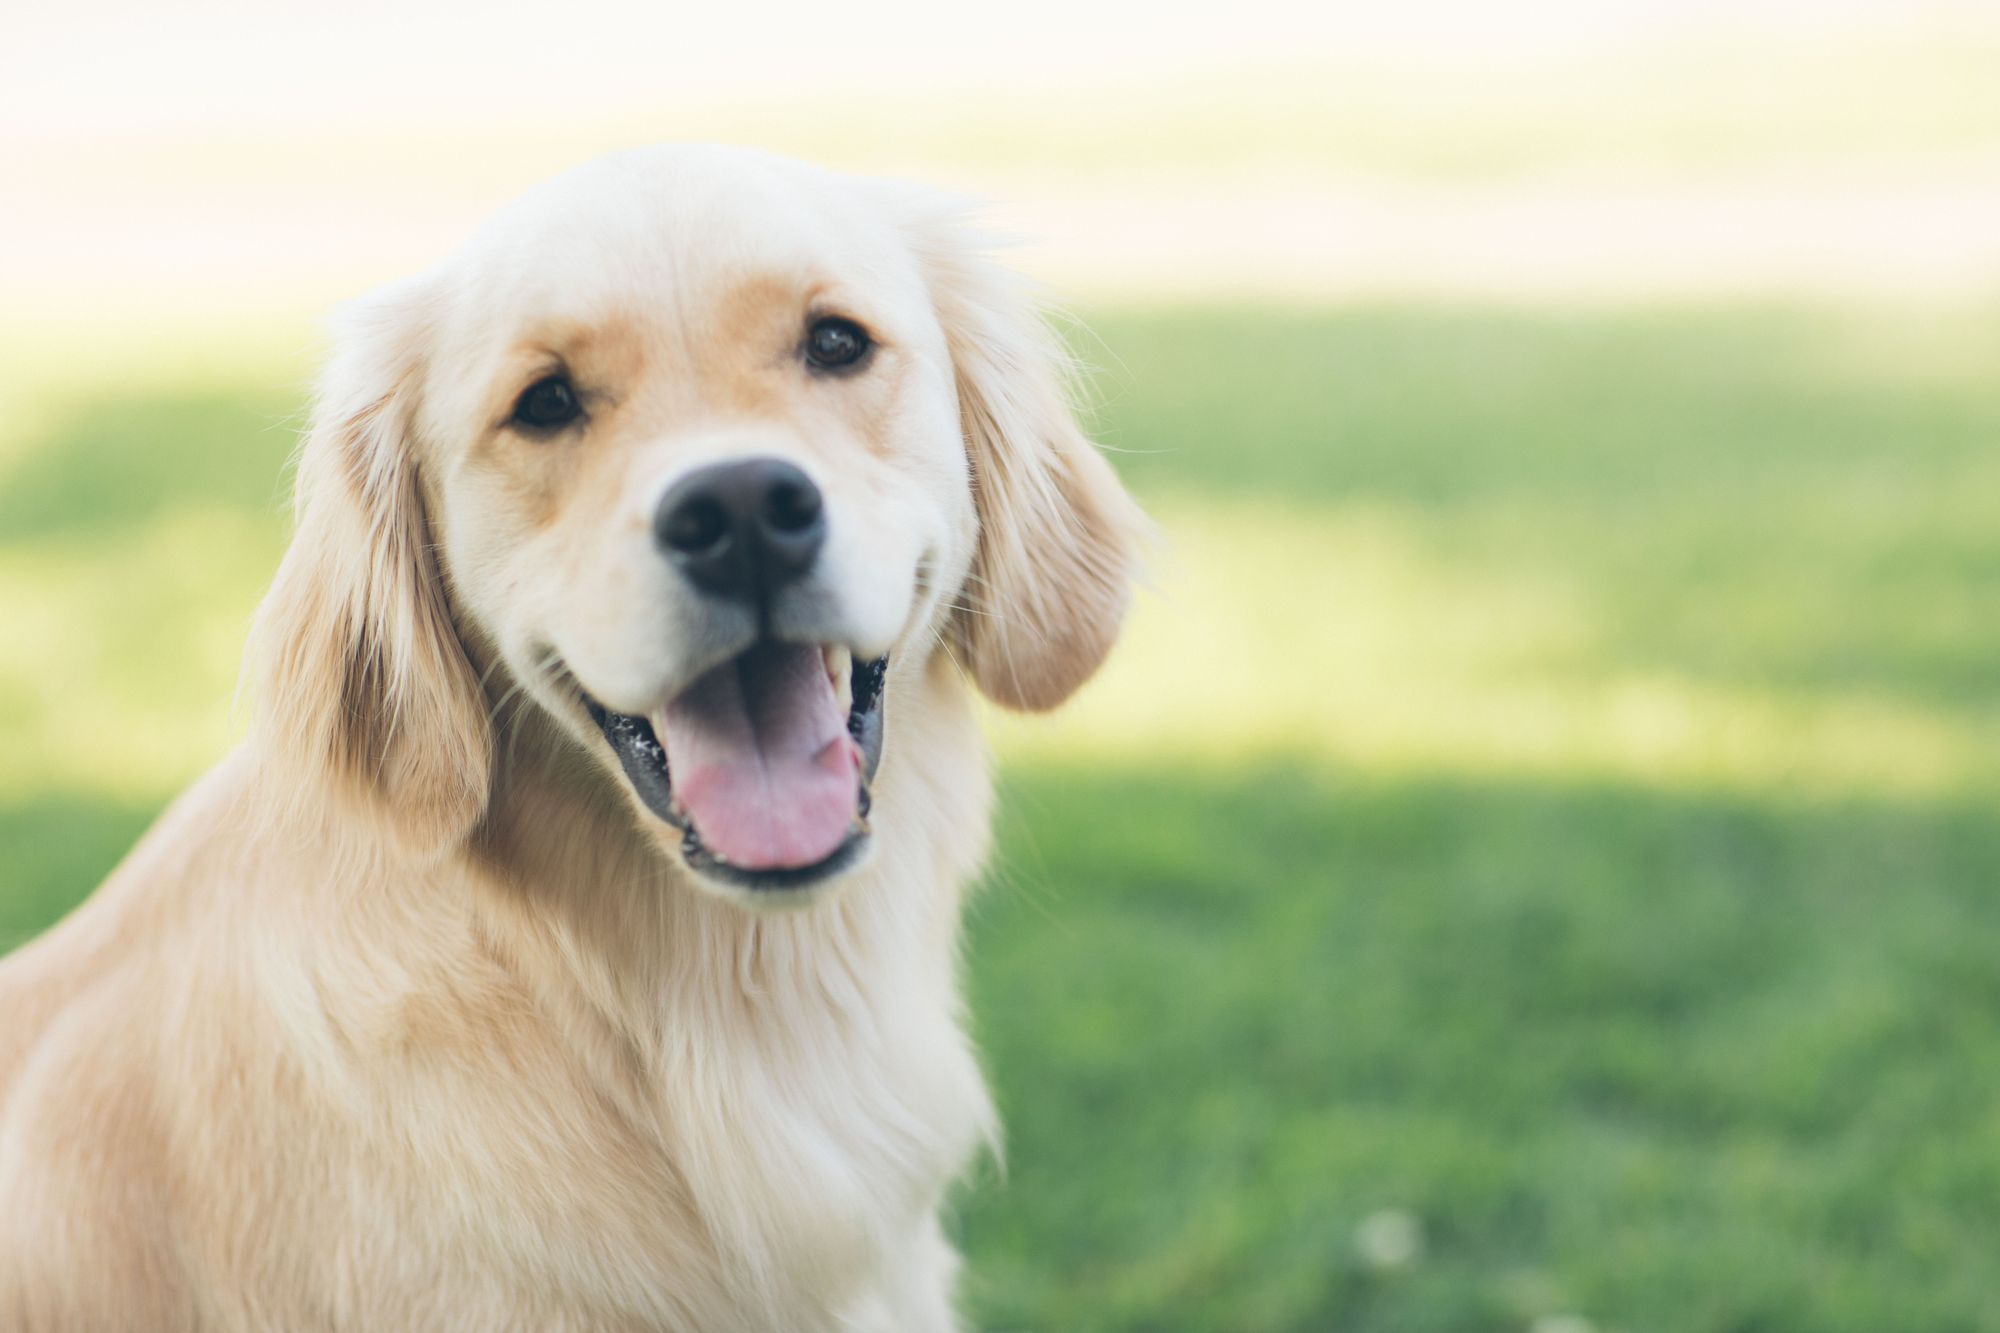 How to brush a dog's teeth: Dog smiling at photographer